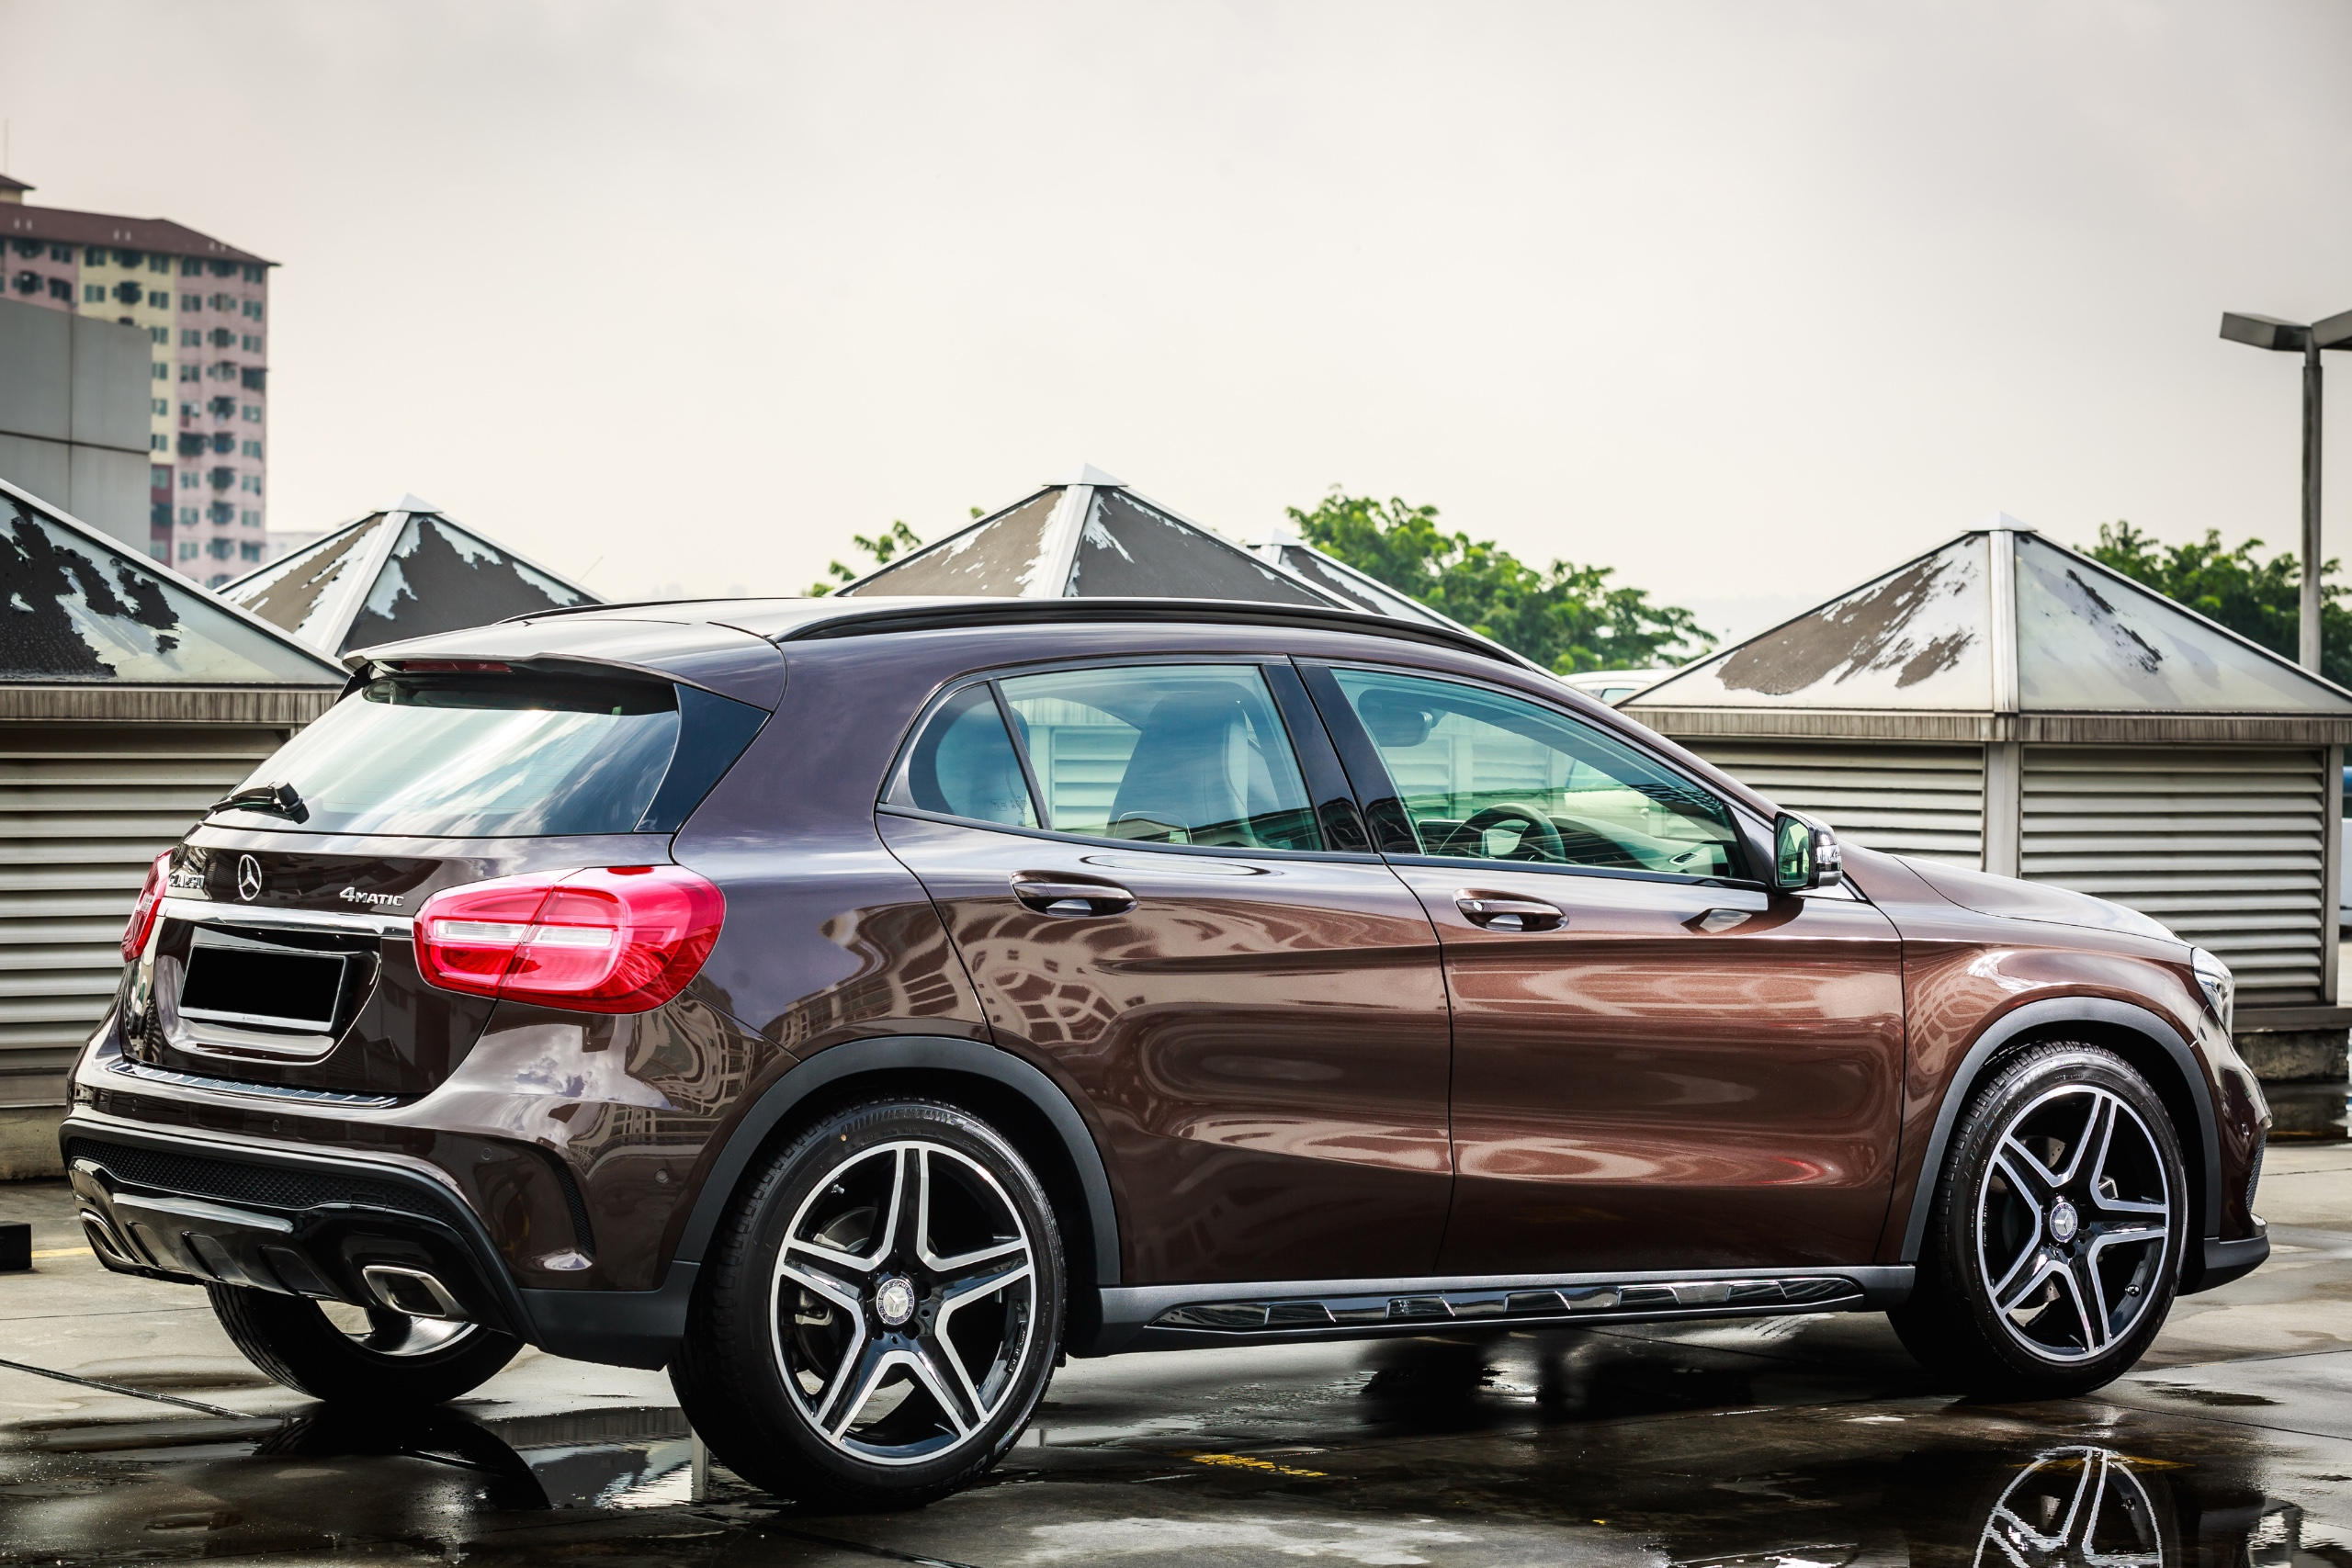 Mercedes Benz Gla 200 >> Mercedes-Benz GLA-Class SUV launched in Malaysia – GLA 200, GLA 250 and GLA 45 AMG, from RM239k ...